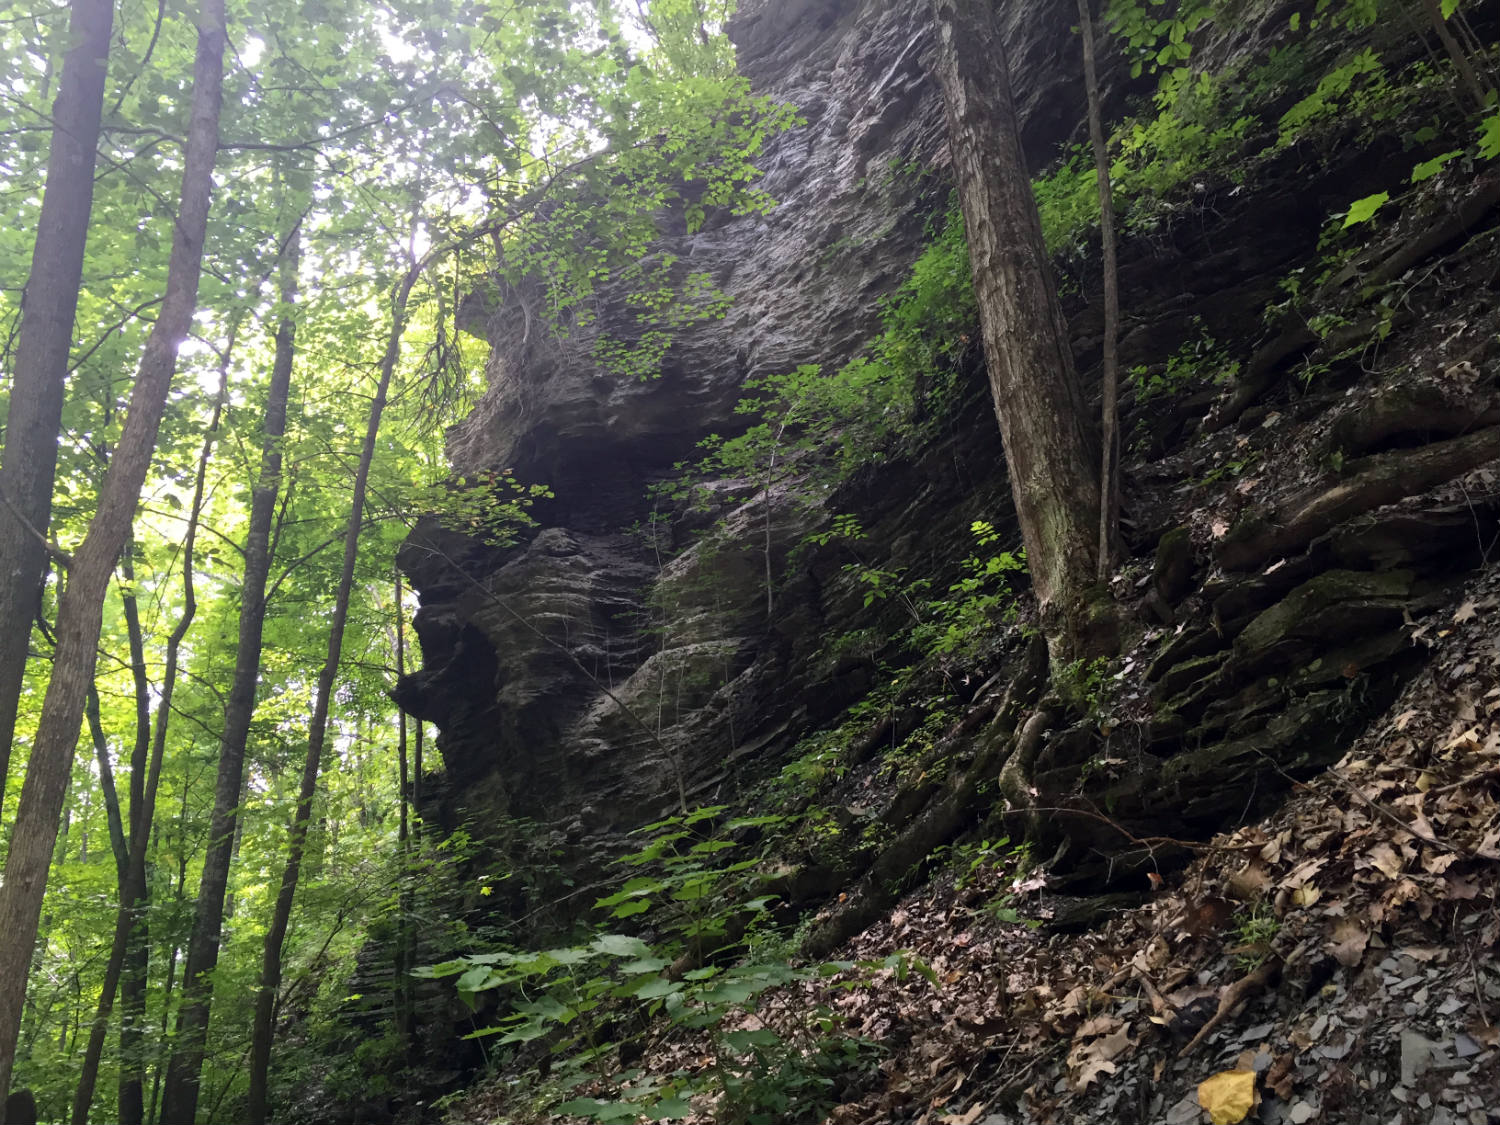 Ravine in Clark Gully in High Tor near Canandaigua Lake